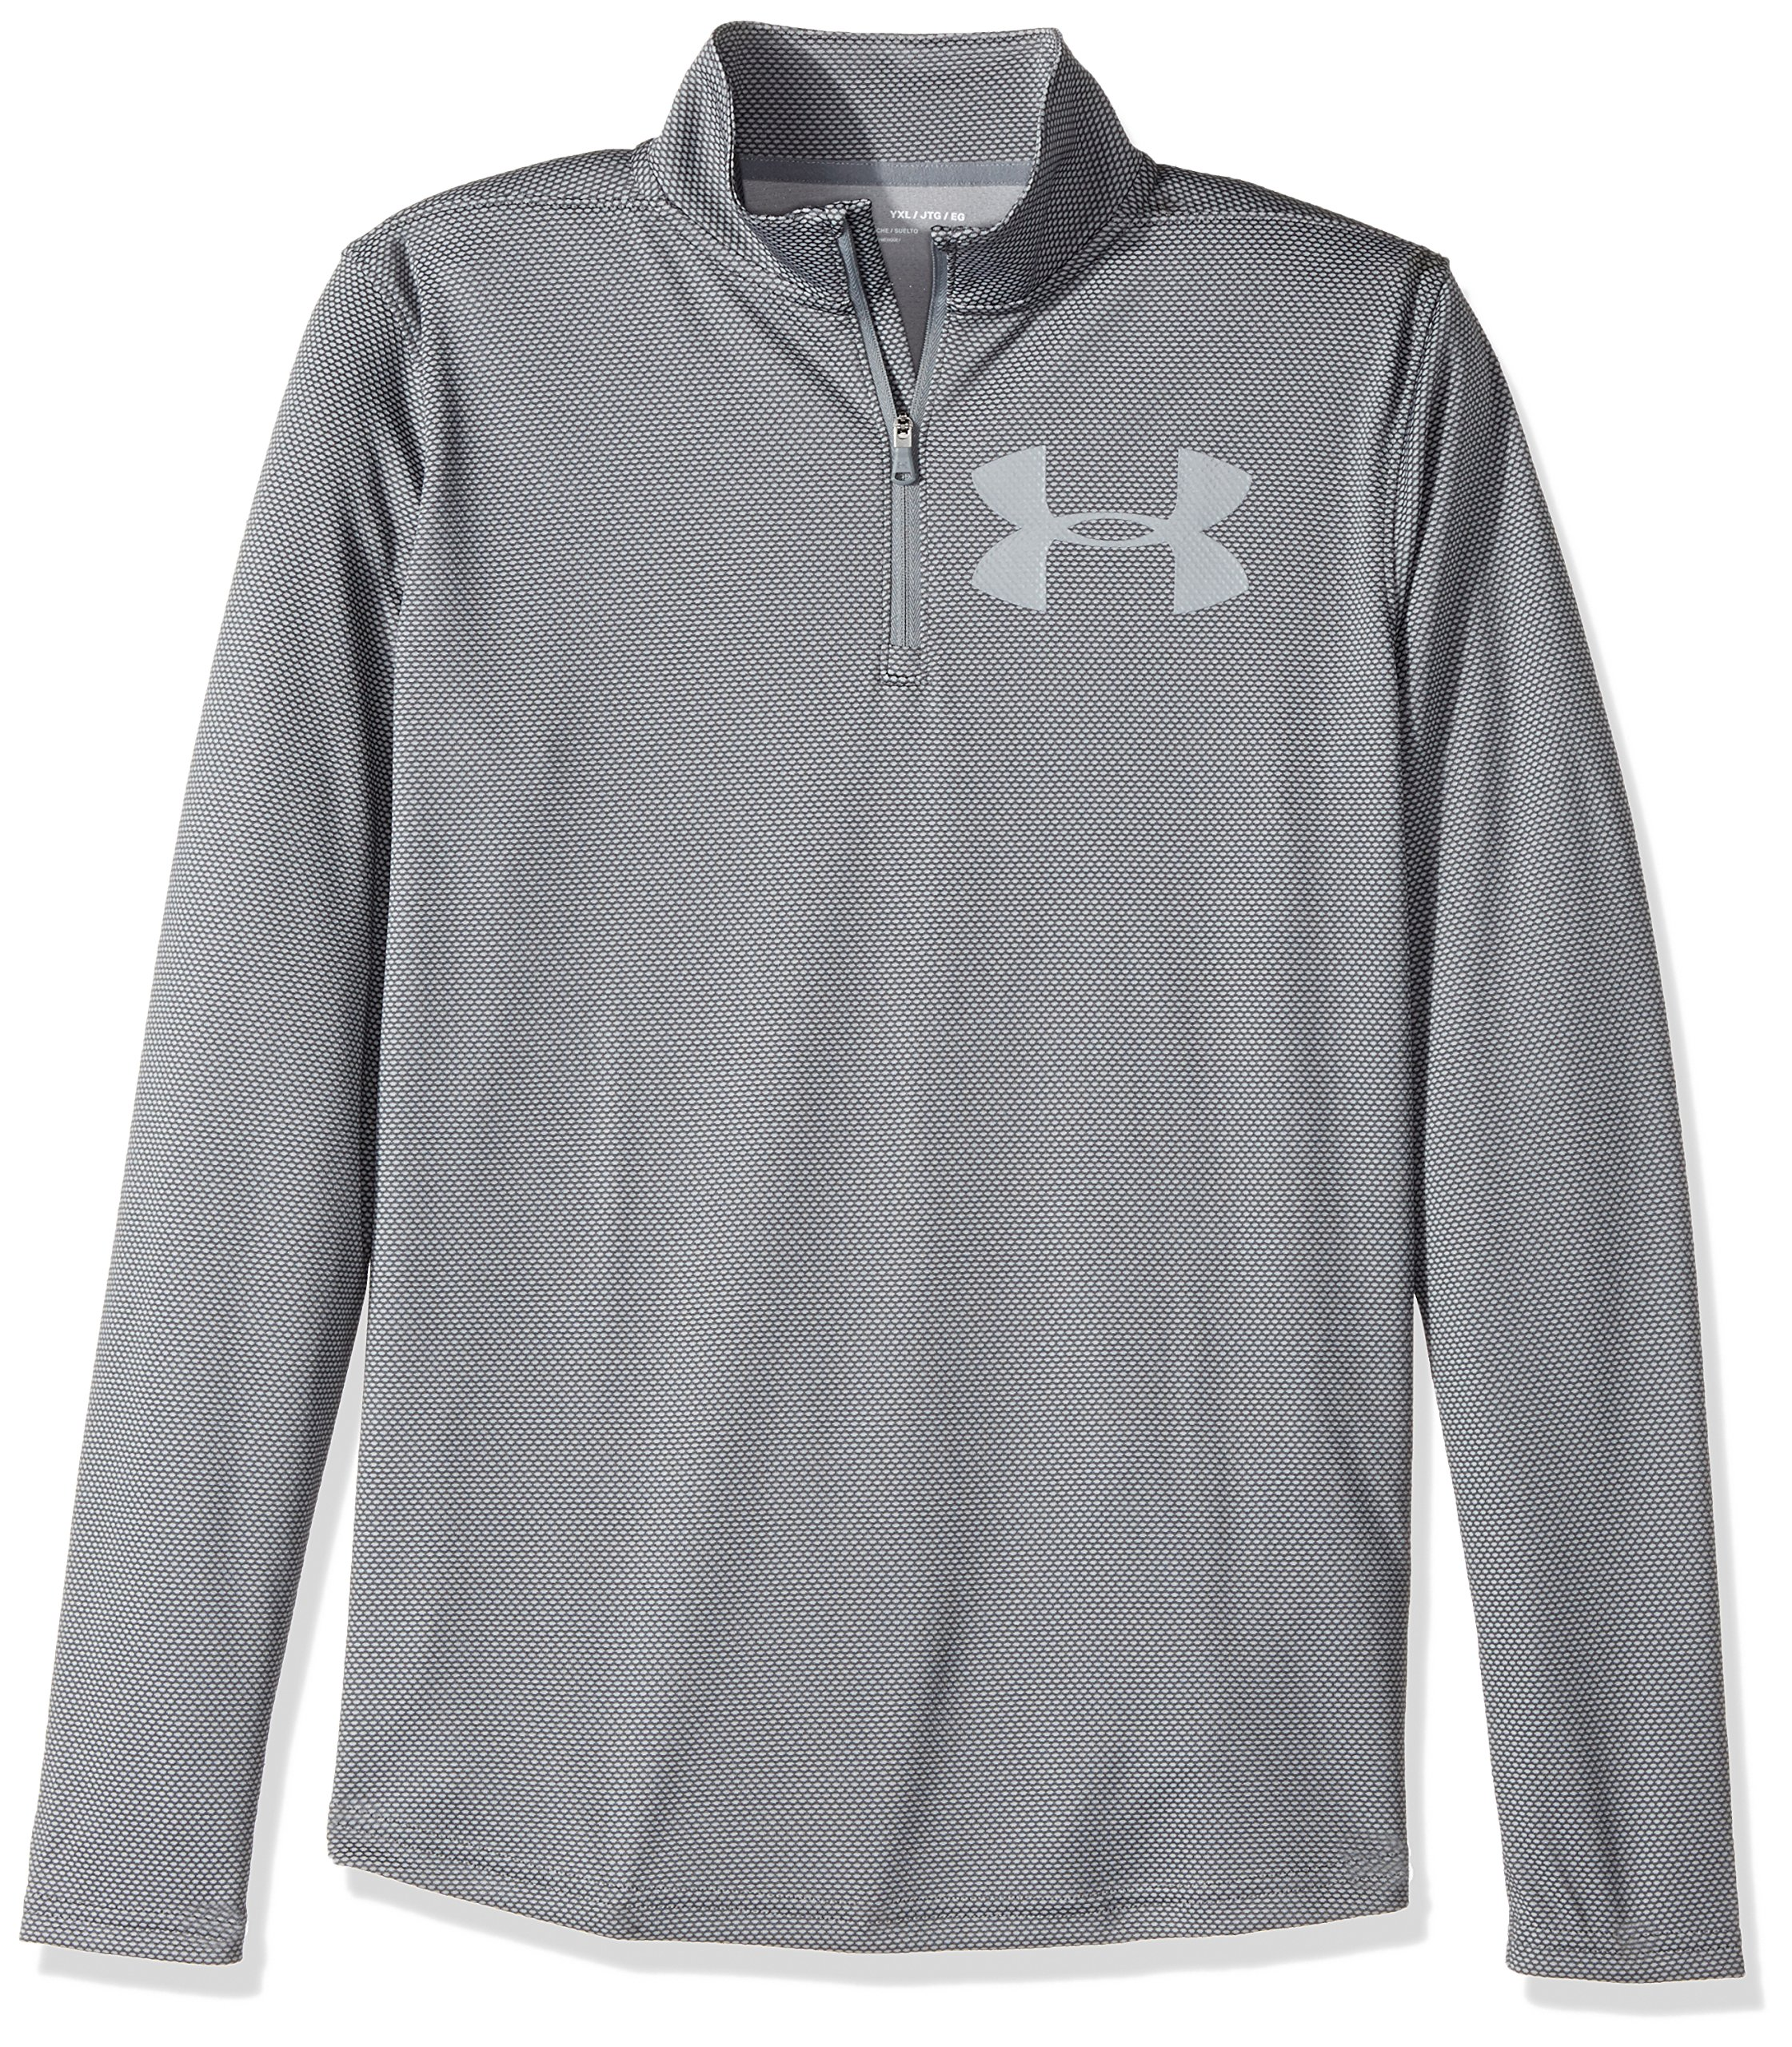 Under Armour Boys' Tech Textured ¼ Zip,Graphite /Steel, Youth Small by Under Armour